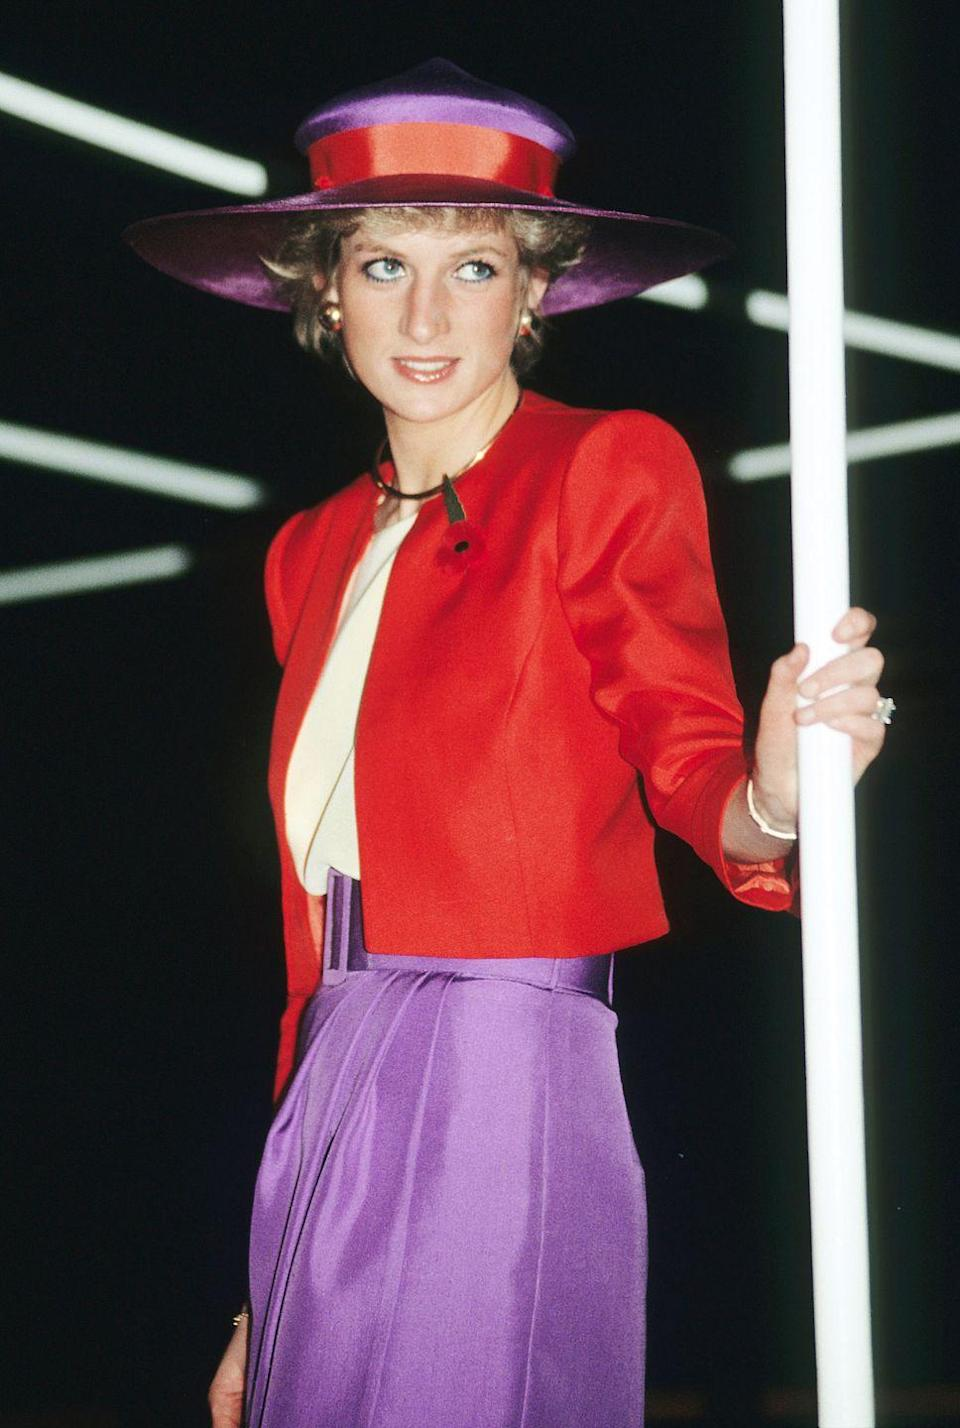 <p>A true style icon, Princess Diana wore classic looks for royal engagements that consisted of boldly colored suiting and bulbous accessories. Finding styles made from duchess satin will make your costume stand out from the rest. </p>